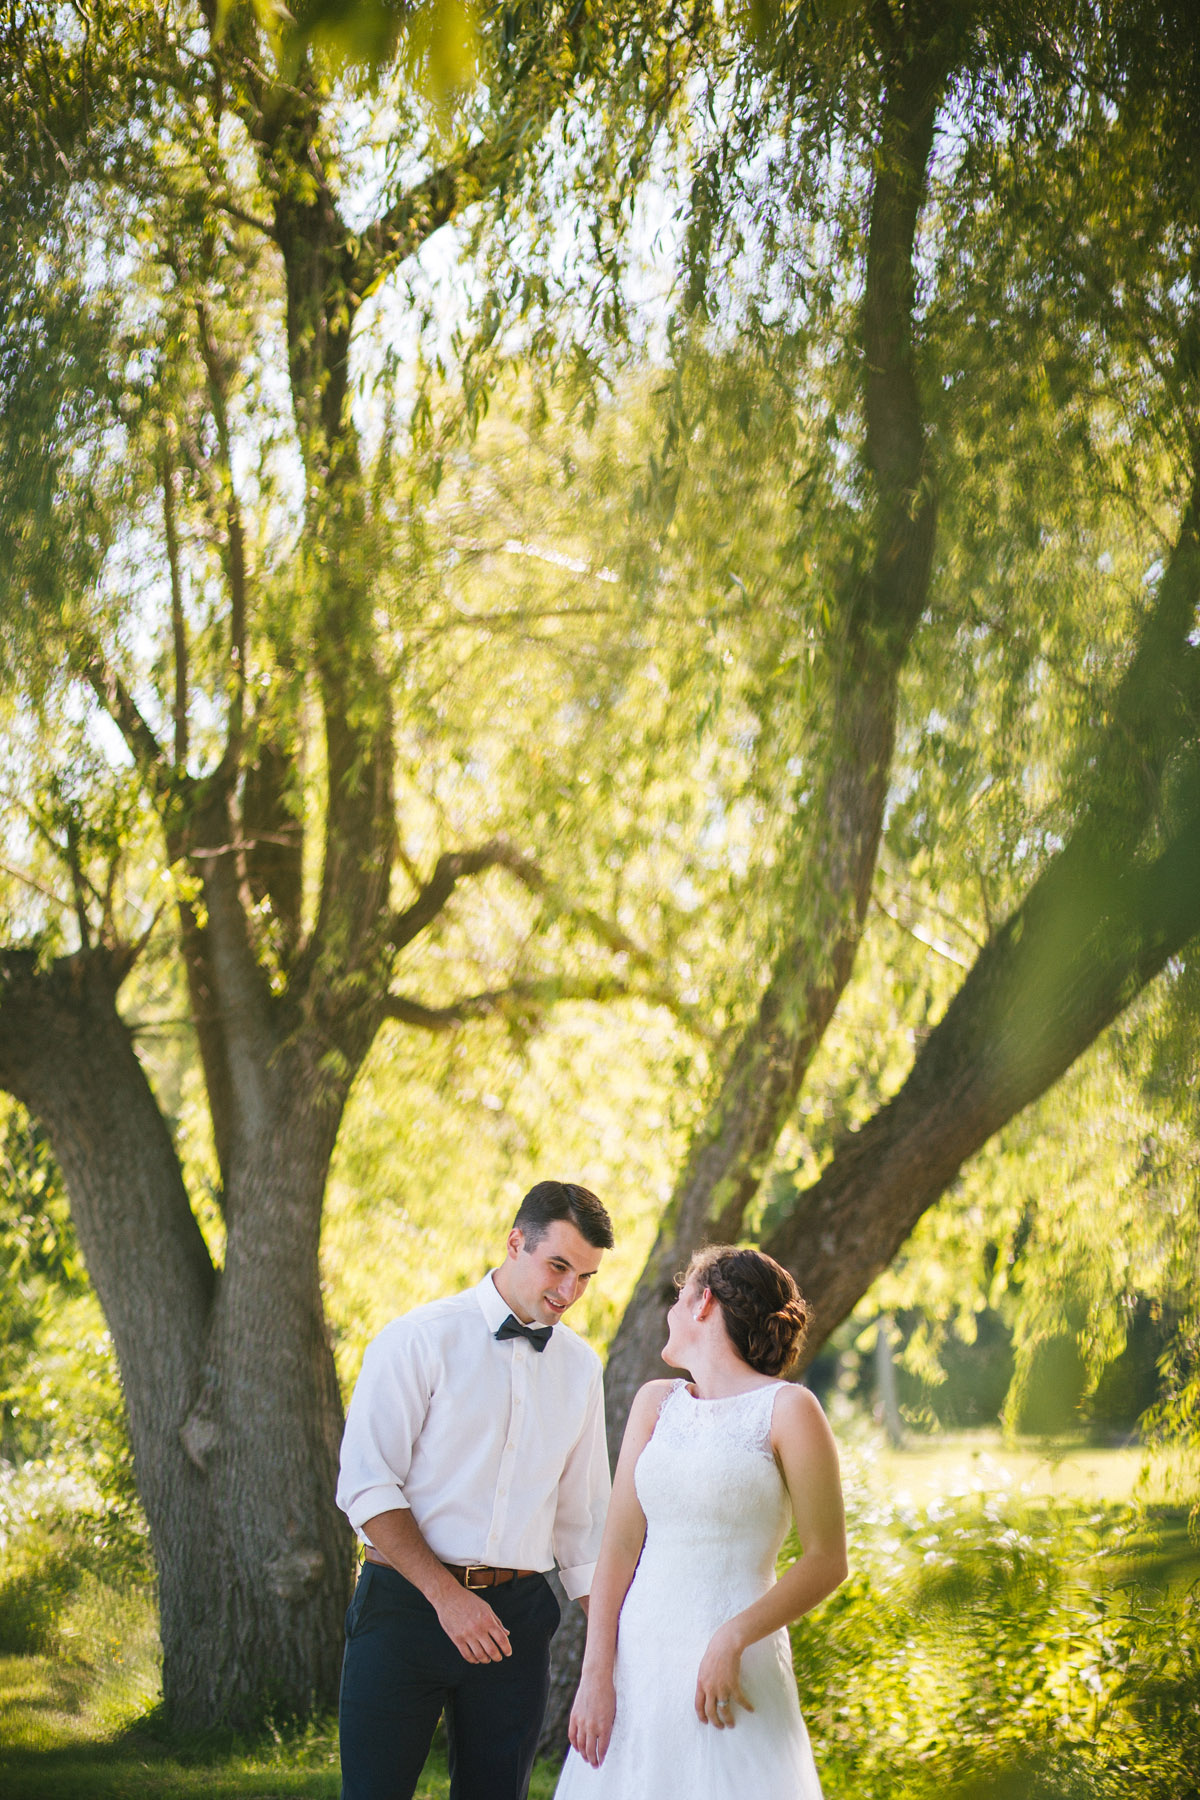 Janelle & Guy Wedding Blog 14